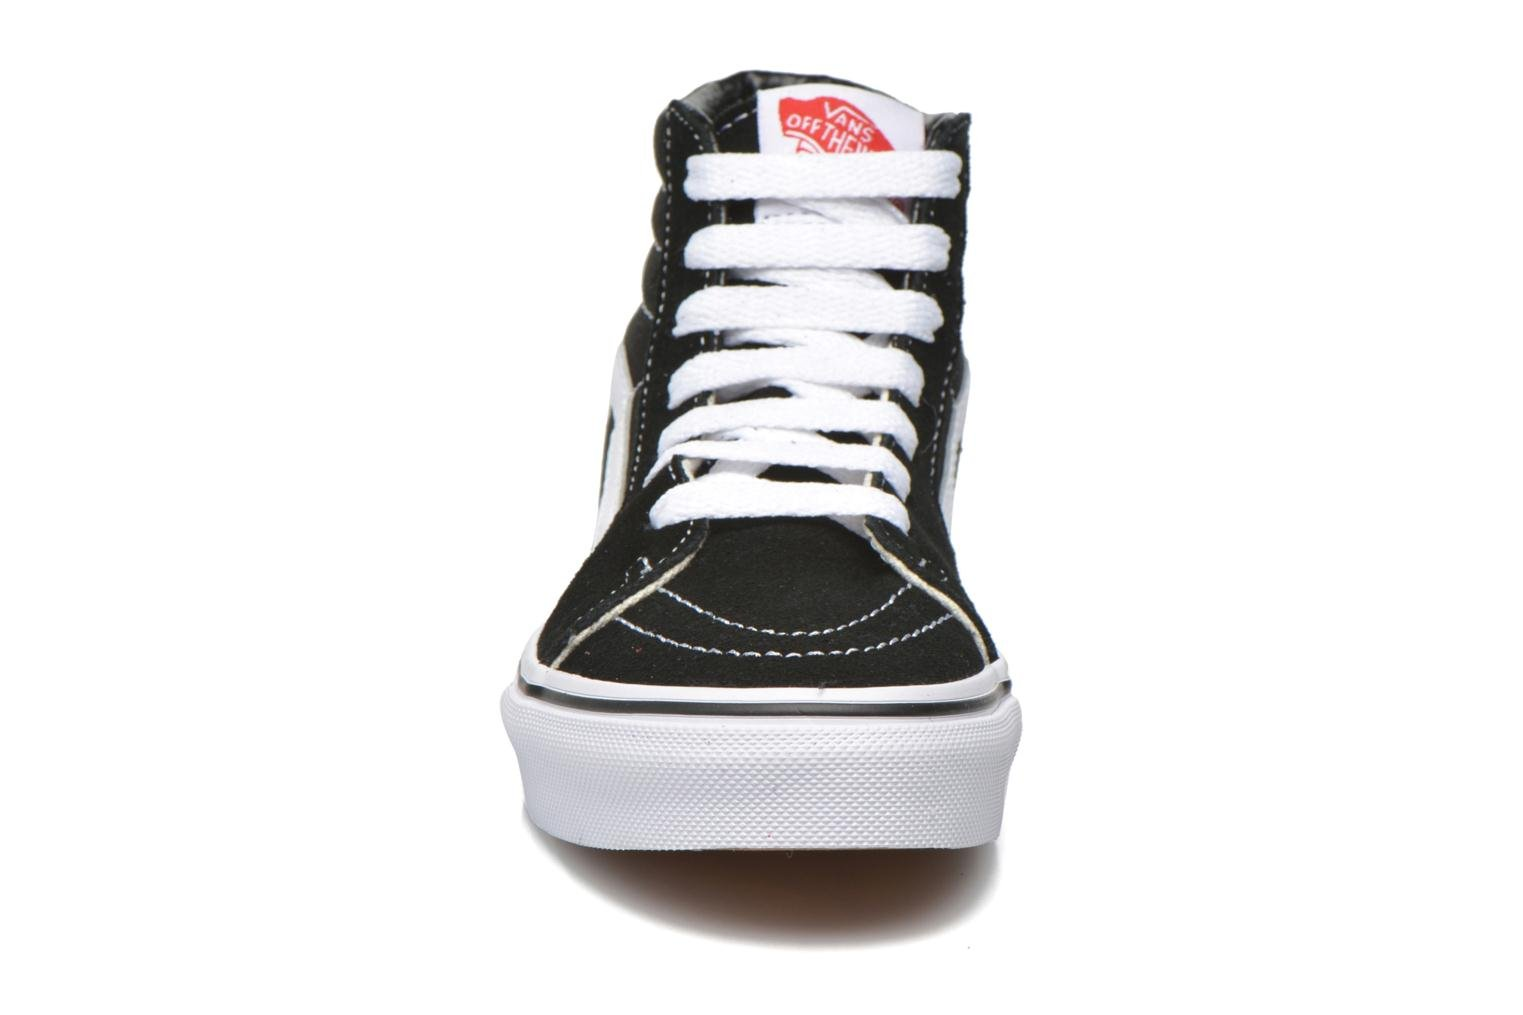 SK8-Hi K Black/true white